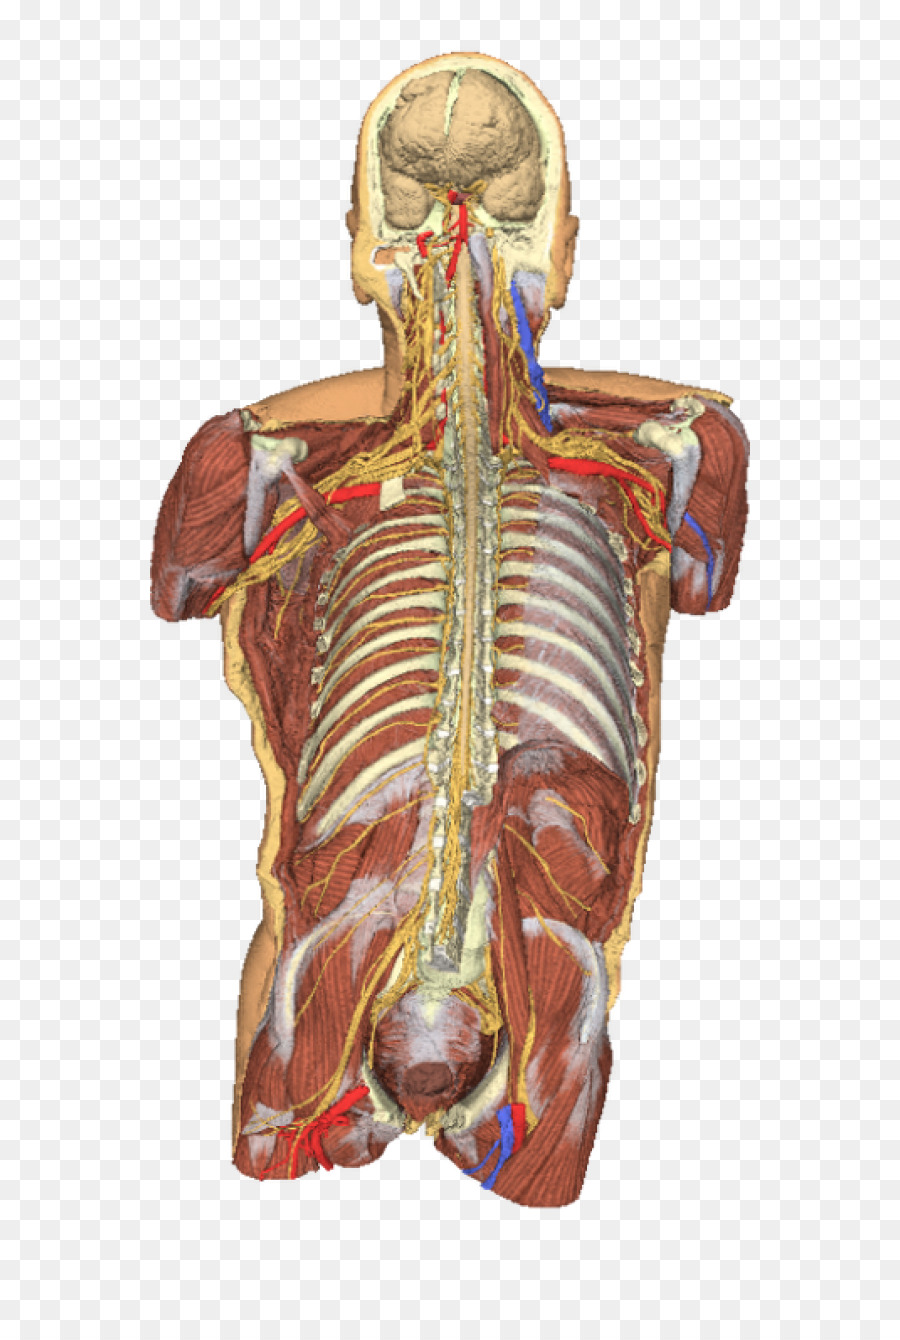 Anatomy Human body Torso Dissection Shoulder - Human Body 3D png ...